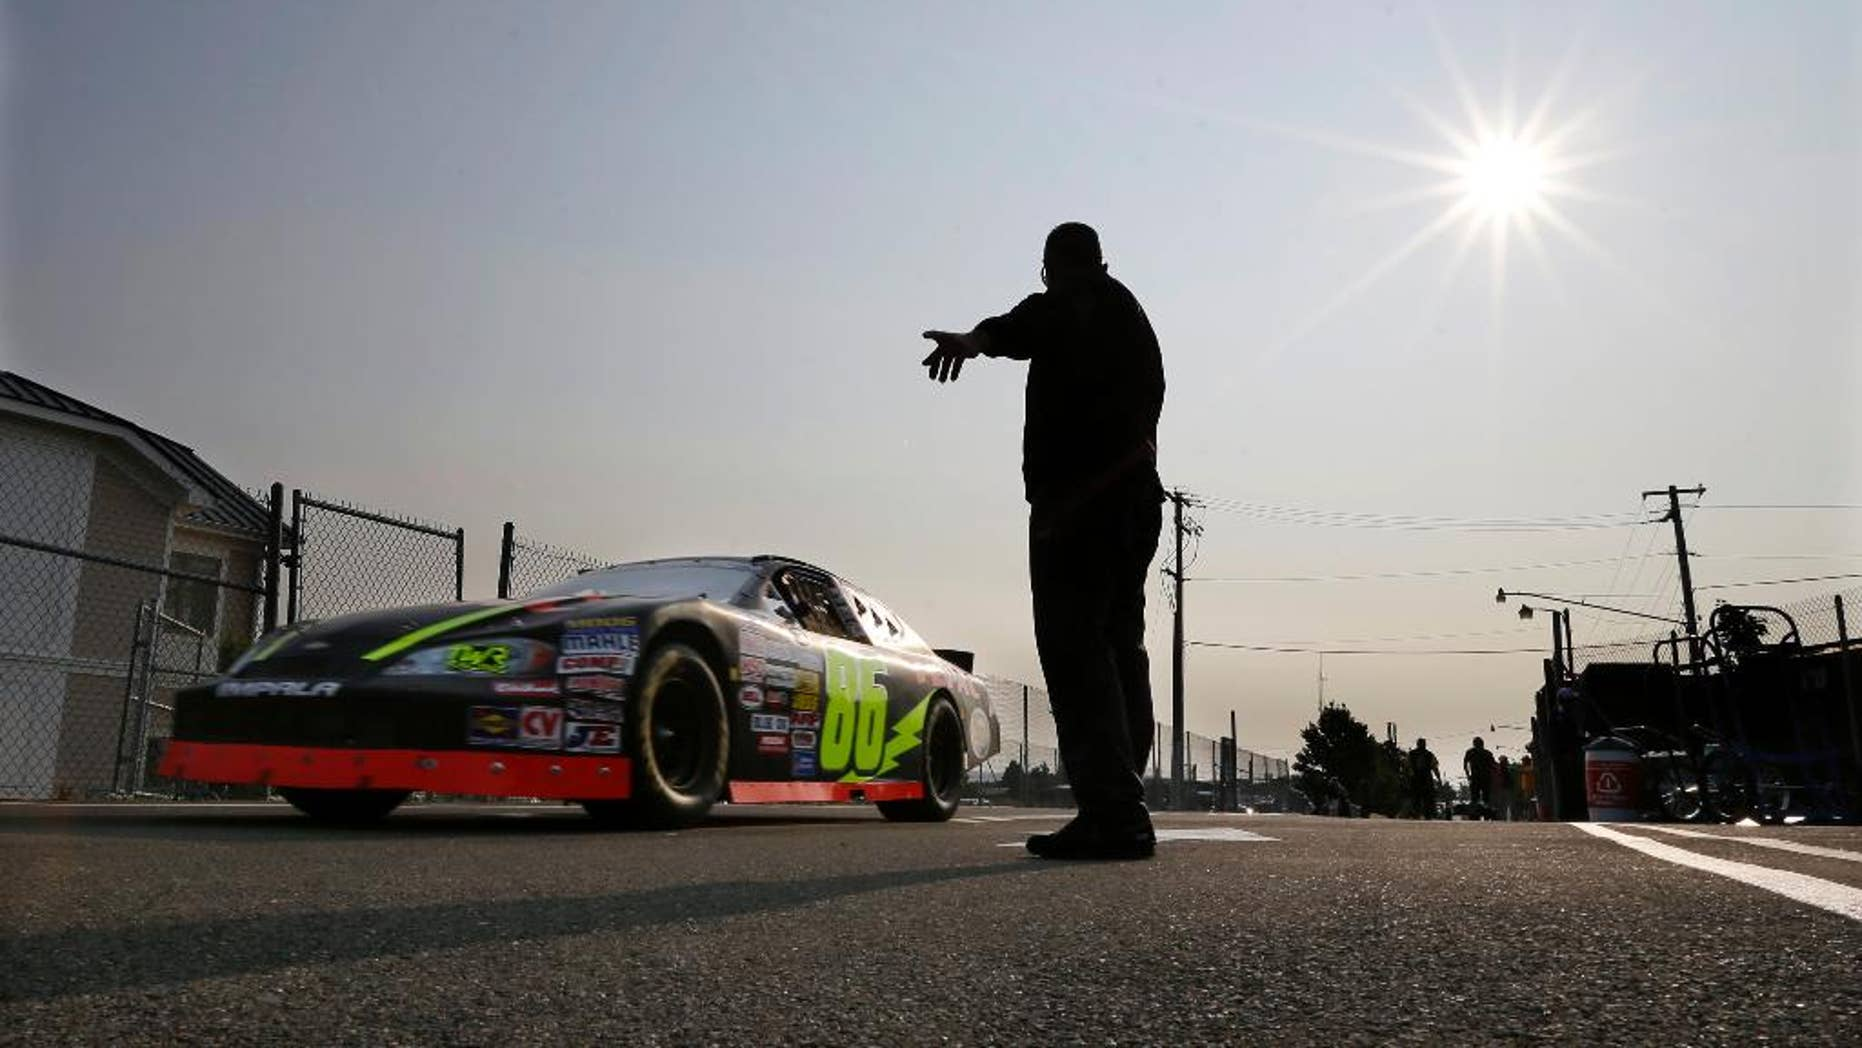 A race car heads out to the track during an early morning practice session for a NASCAR K&N Pro Series auto race at Watkins Glen International, Friday, Aug. 8, 2014, in Watkins Glen N.Y. (AP Photo/Mel Evans)